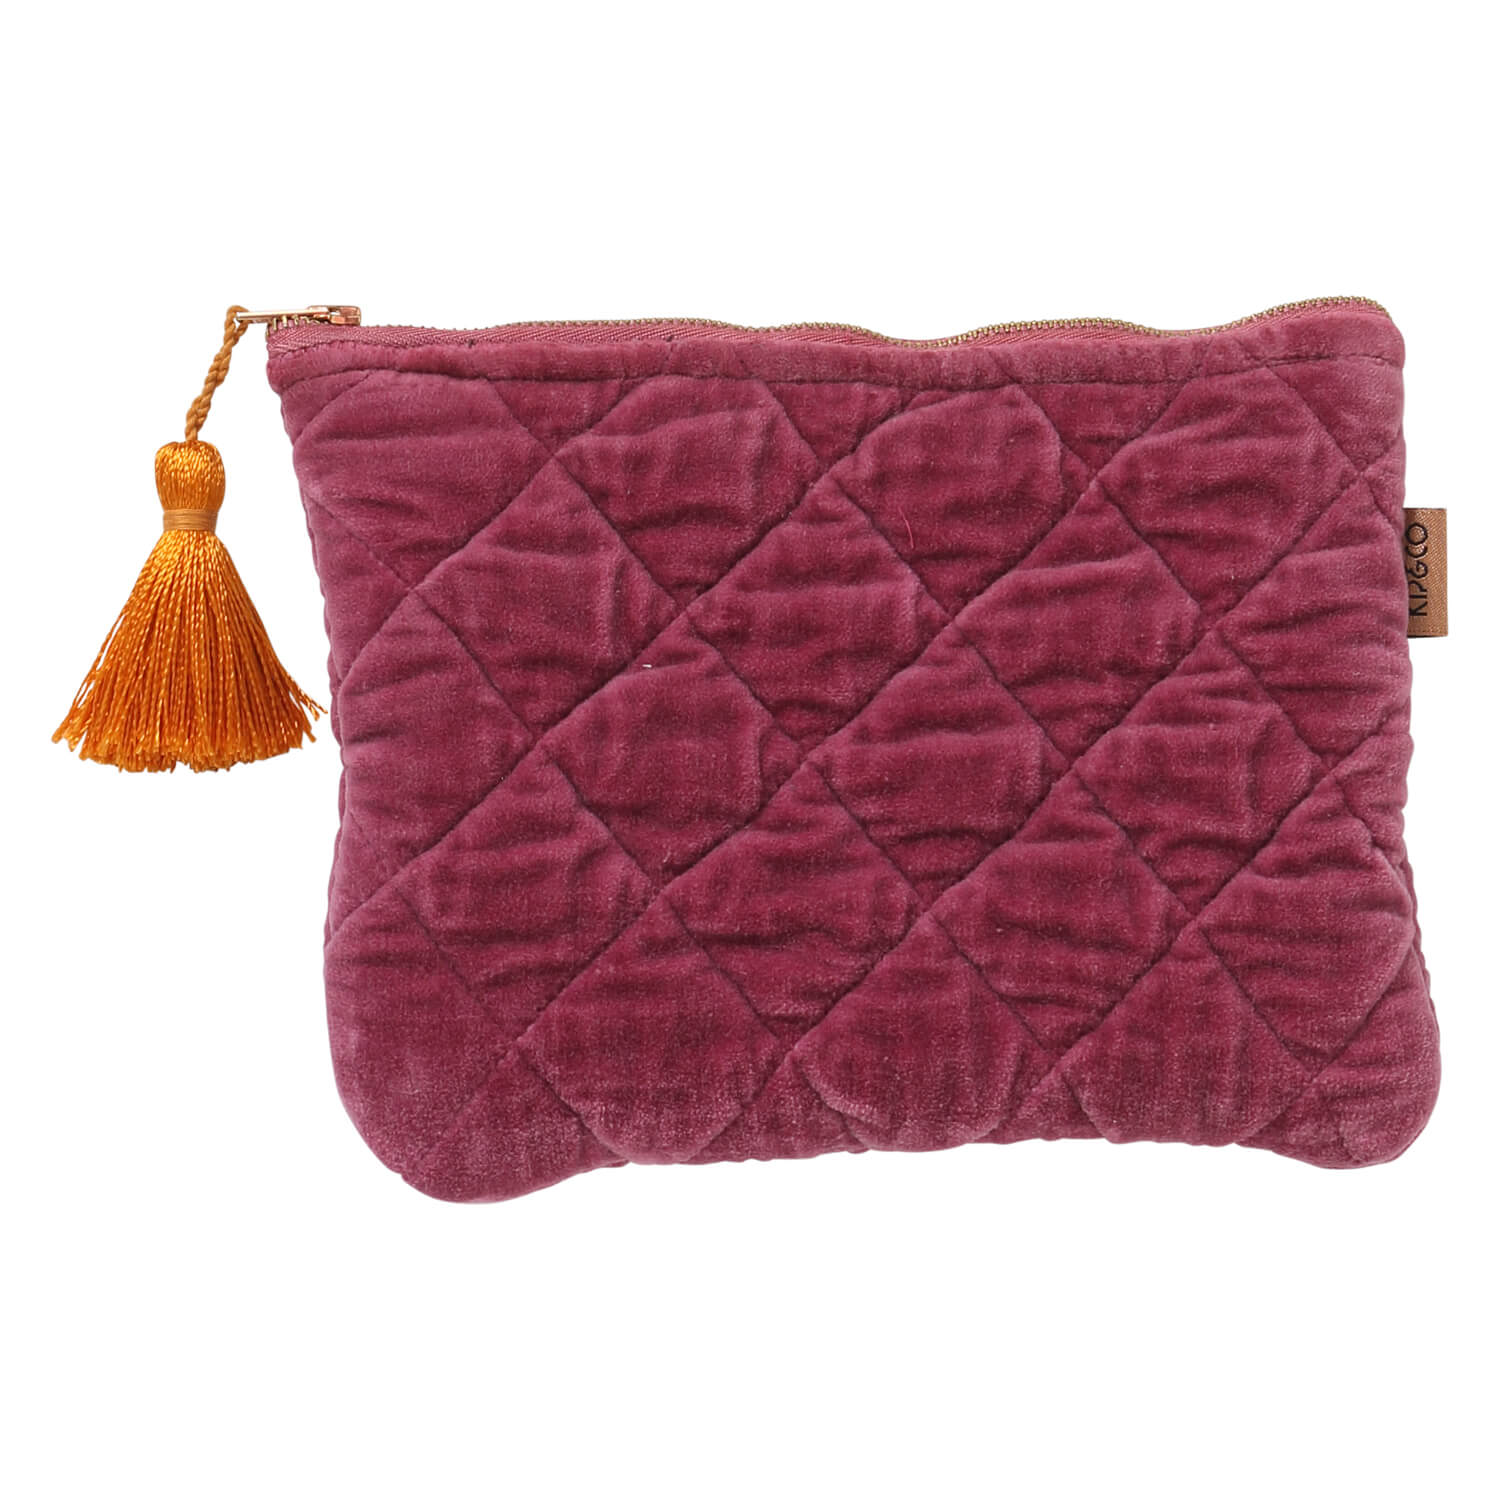 Kip and co peony rose velvet quilted cosmetics purse | $35 | The Home Maven